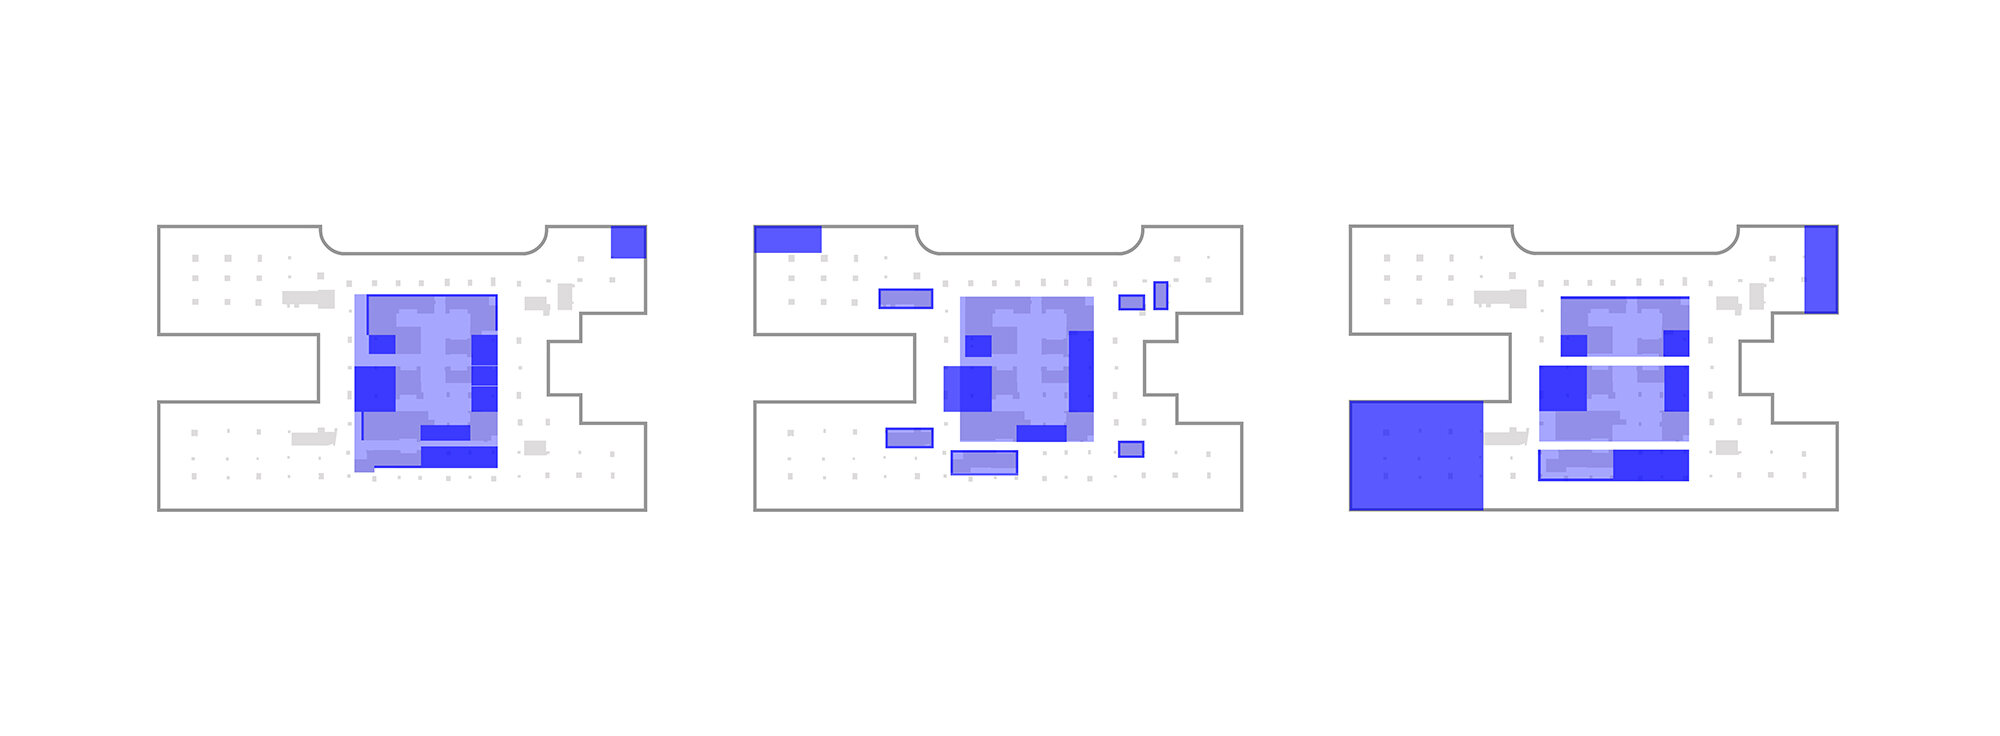 230 Park Avenue - 10th Floor - Floor Plate Diagrams-01-small.jpg